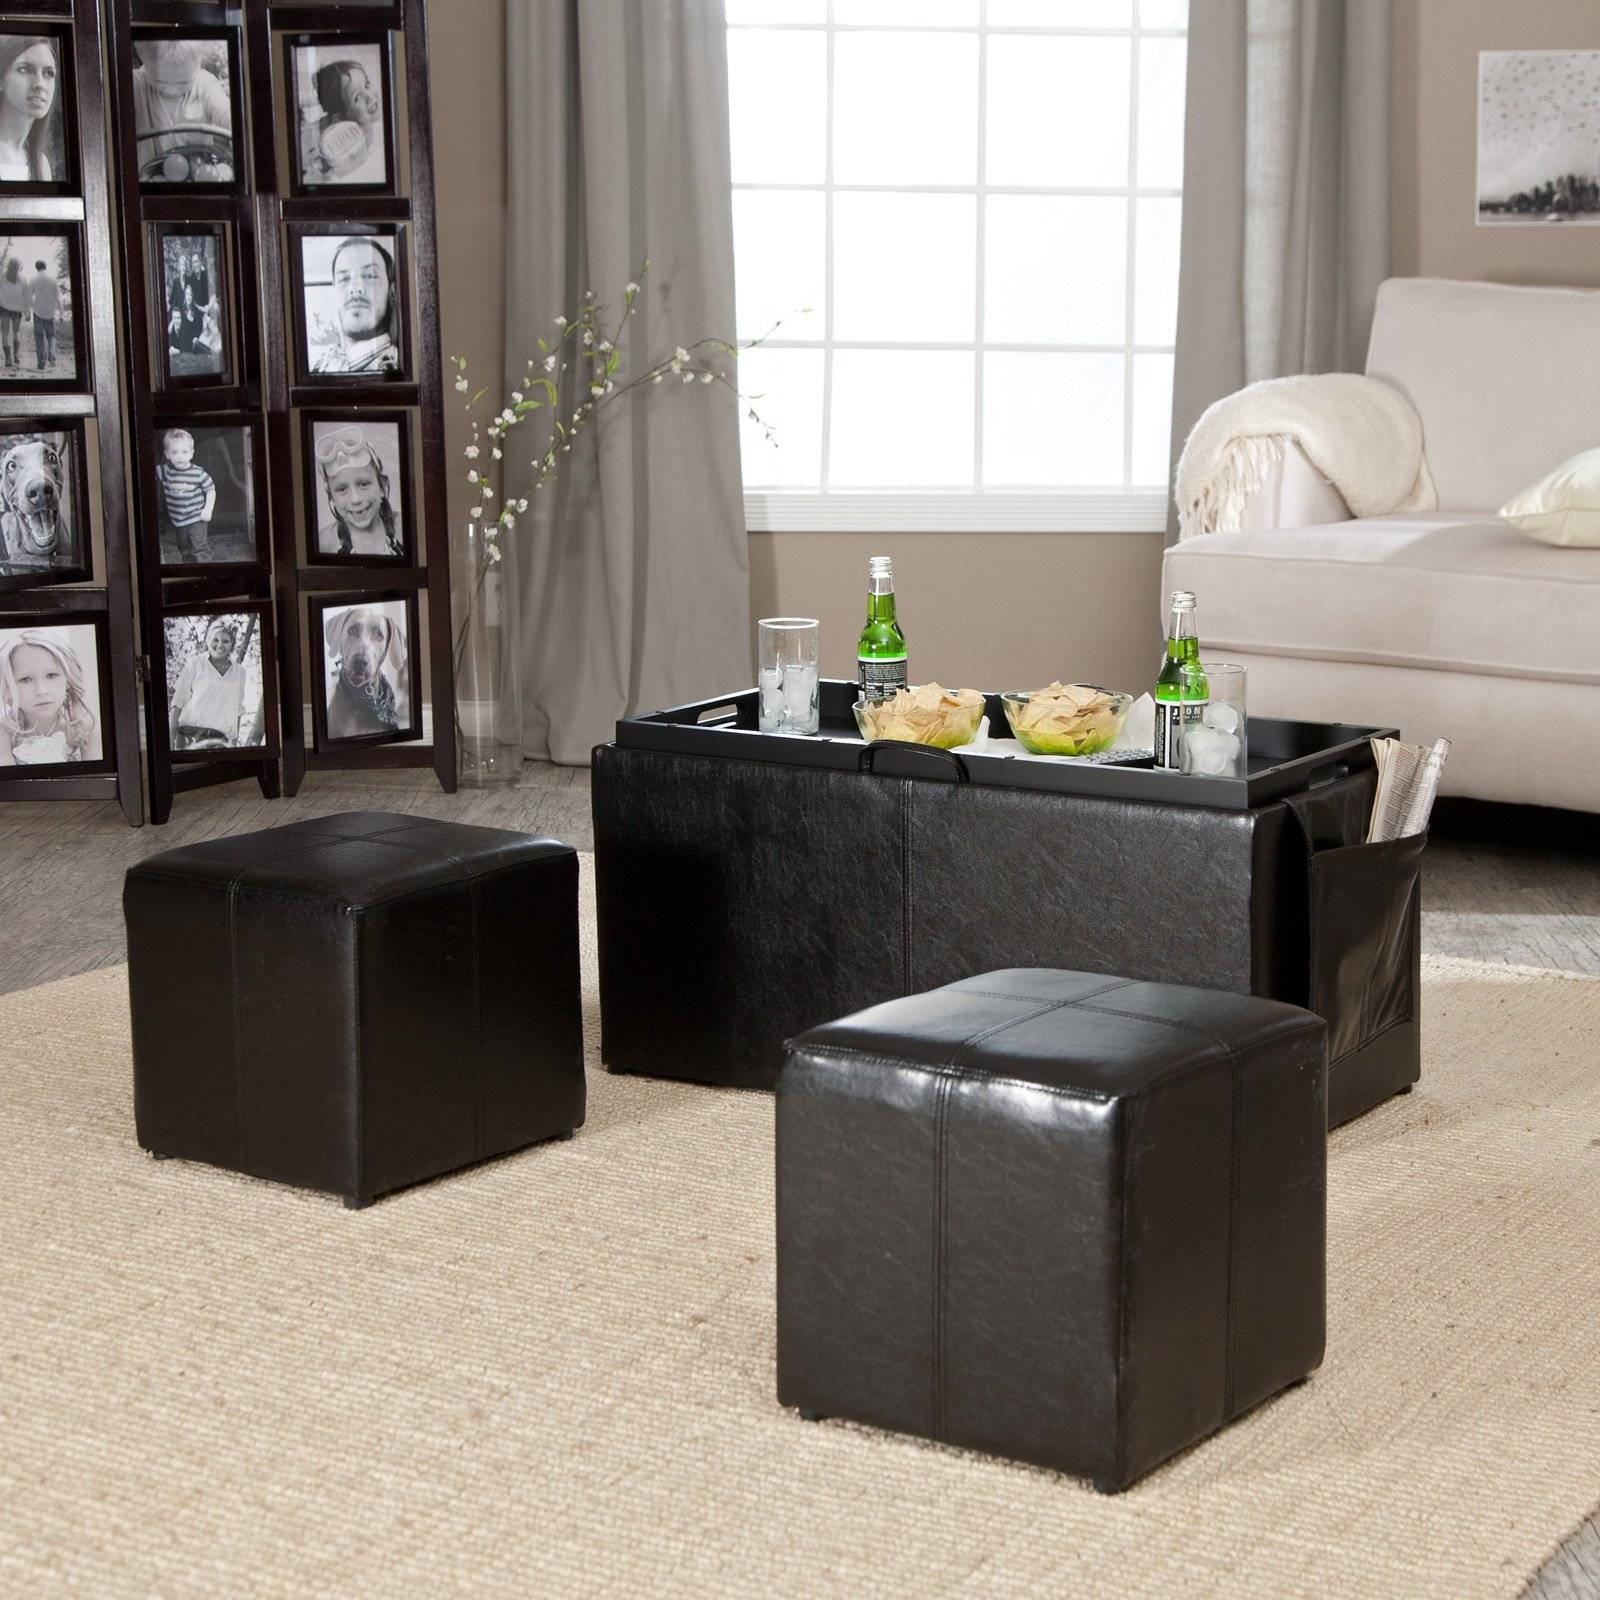 Coffee Tables Under $200 Boardroom Refresh with Large Coffee Tables With Storage (Image 5 of 30)